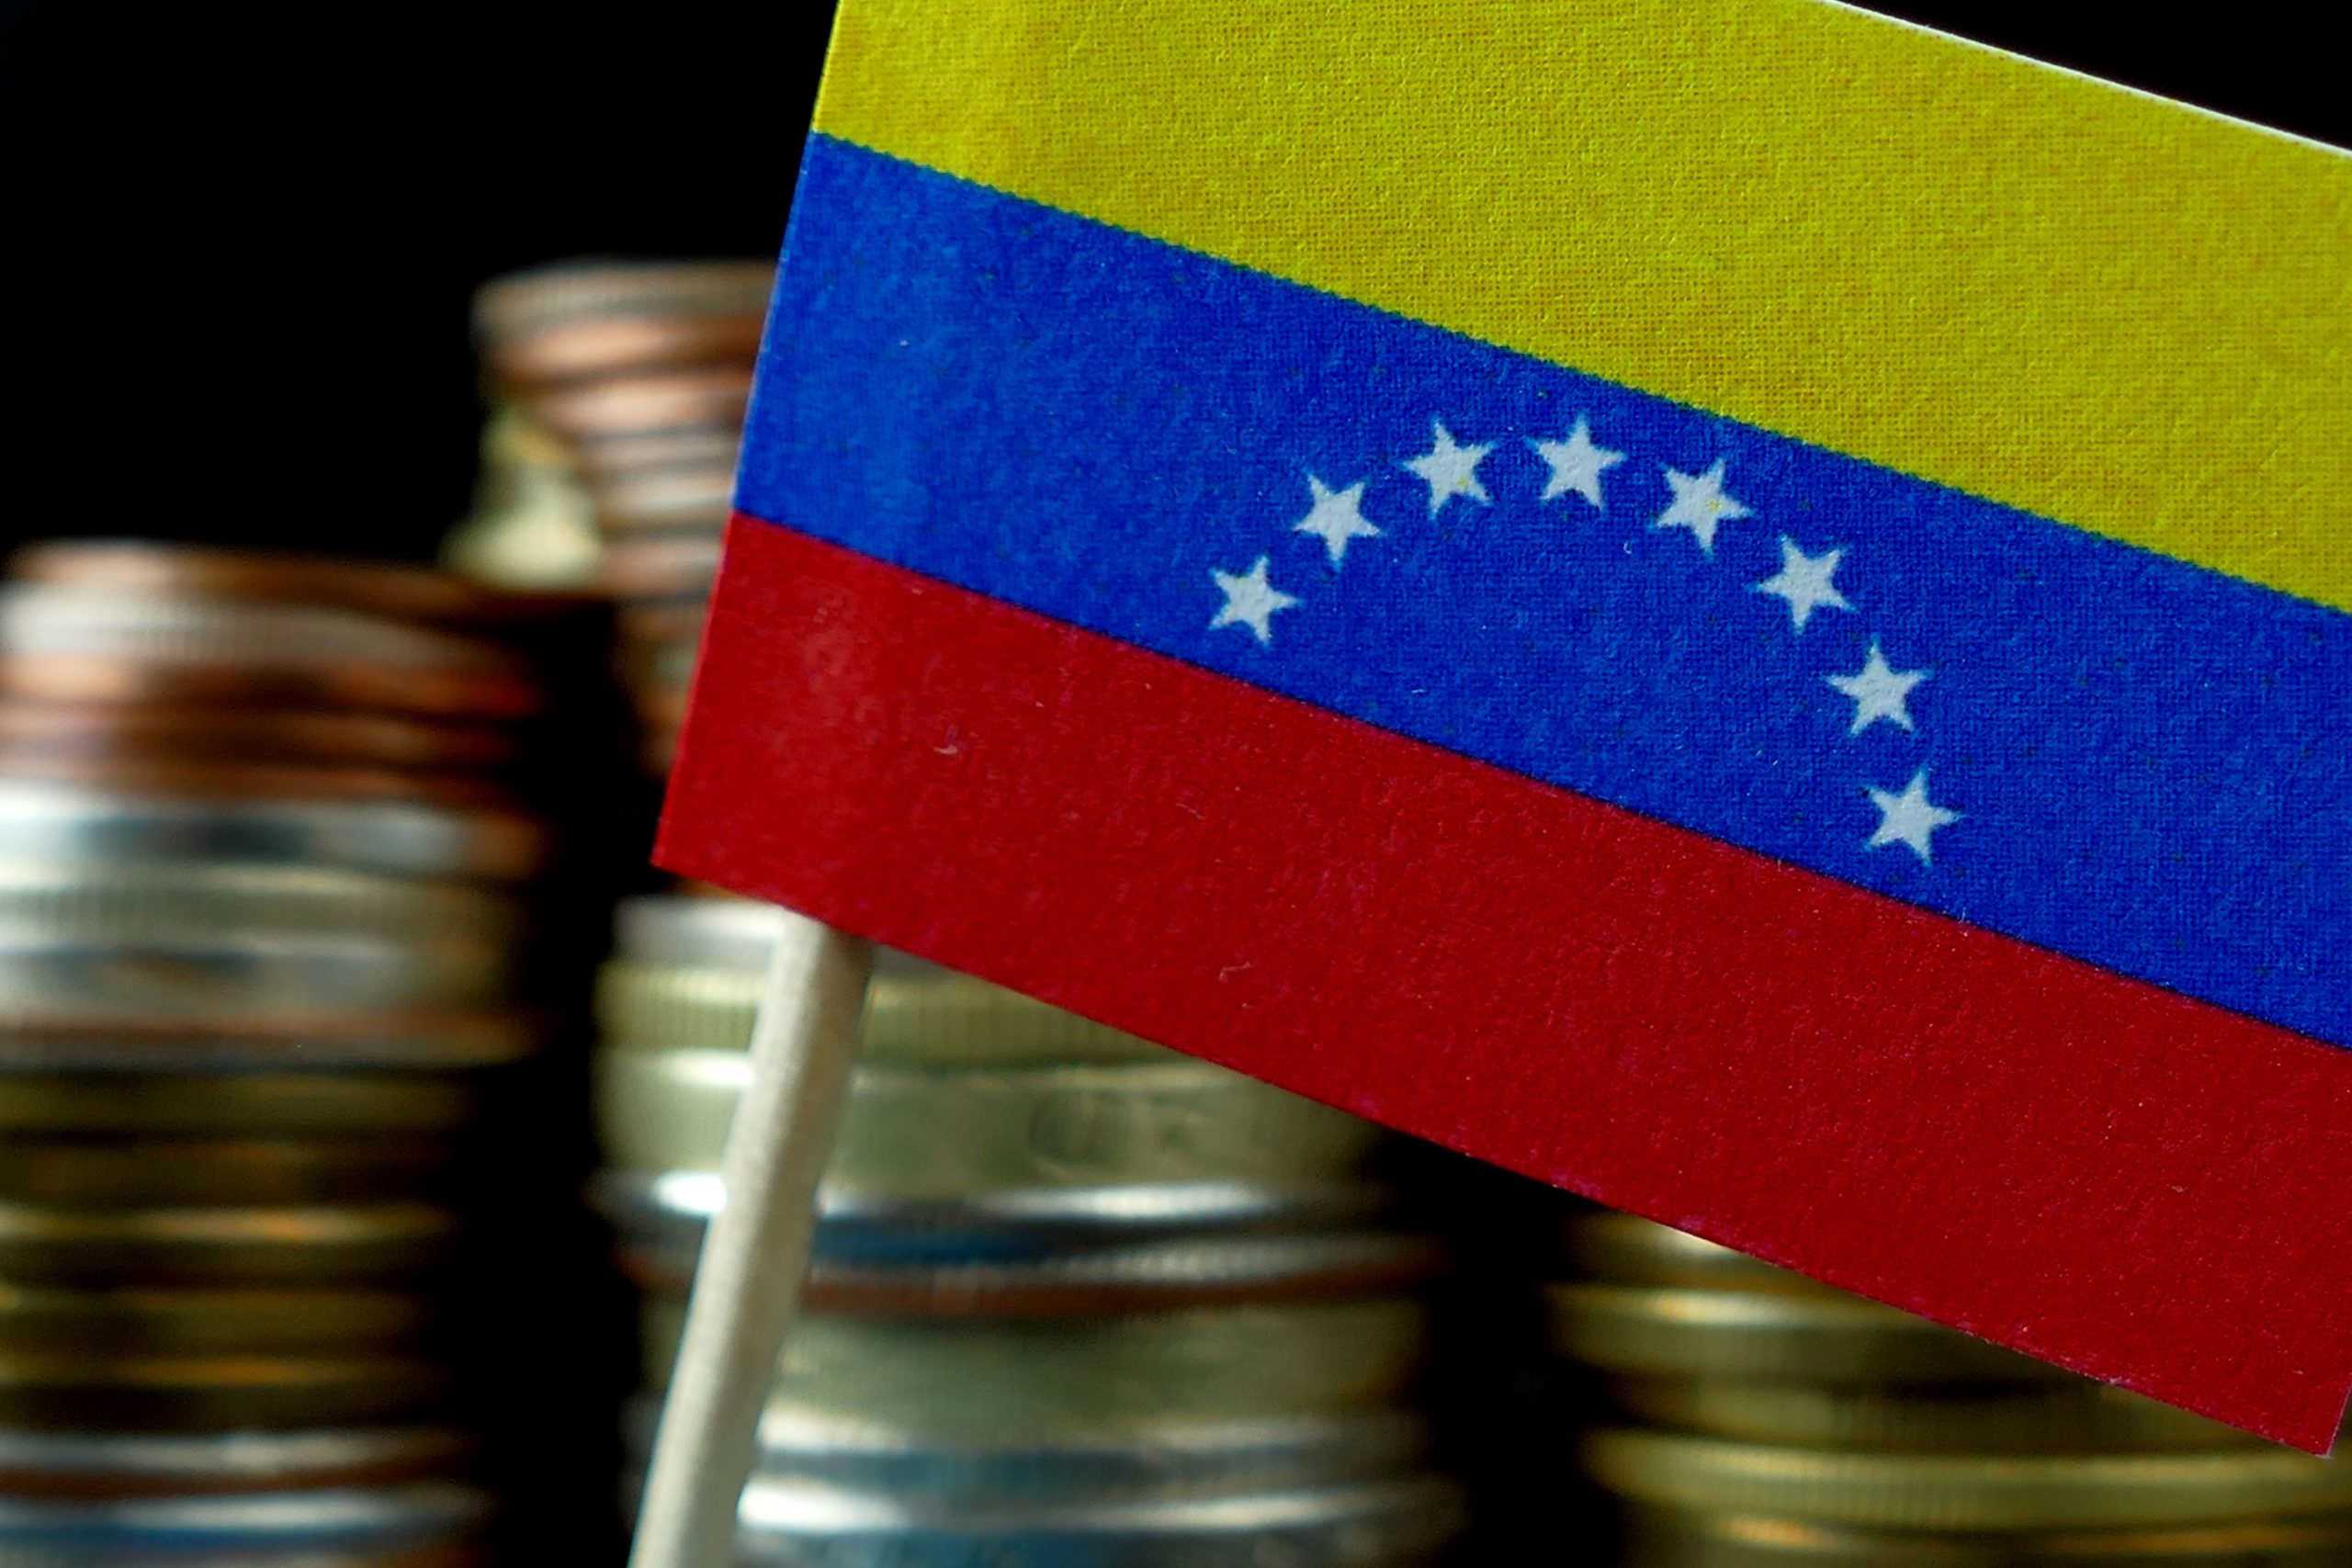 Venezuela law changes 2018 Patents Trademarks and Designs